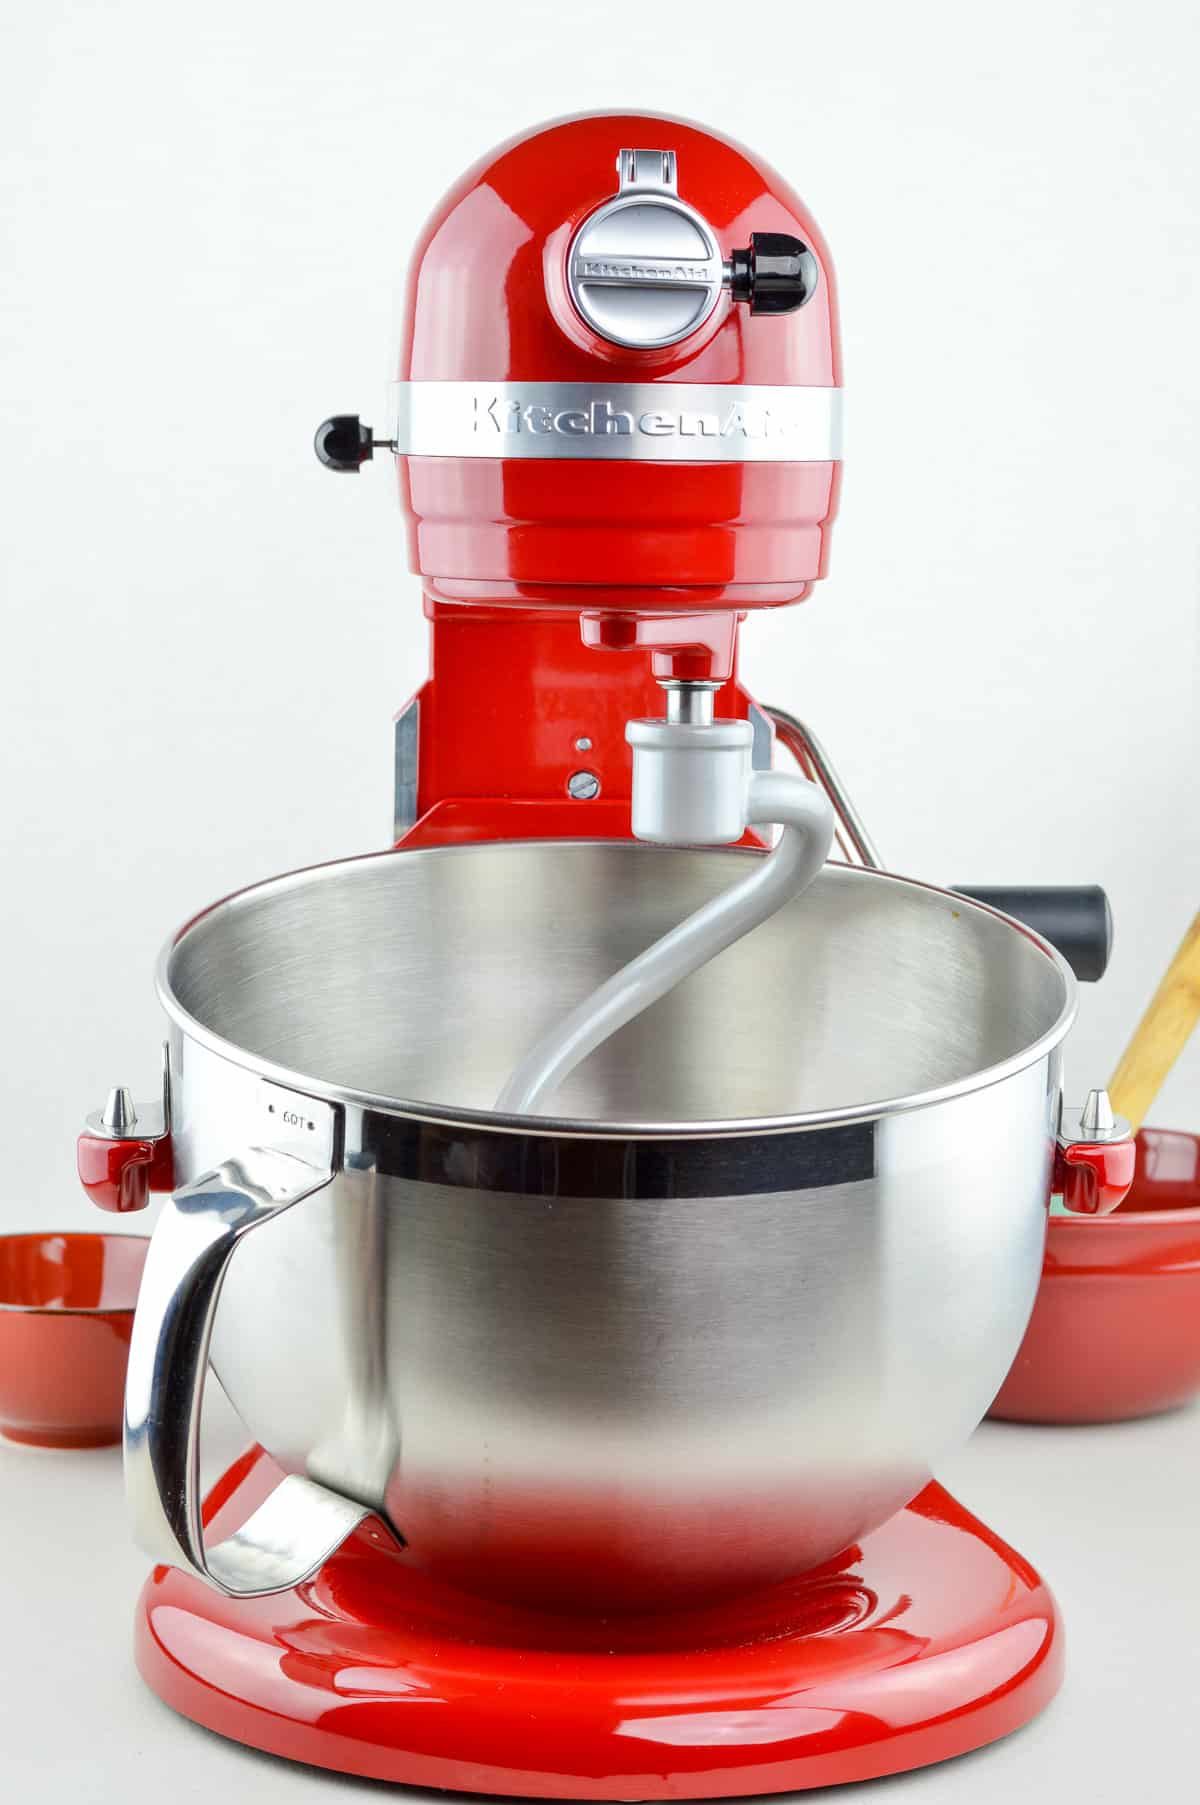 a close up shot of red colored 6 quart KitchenAid Professional stand mixer